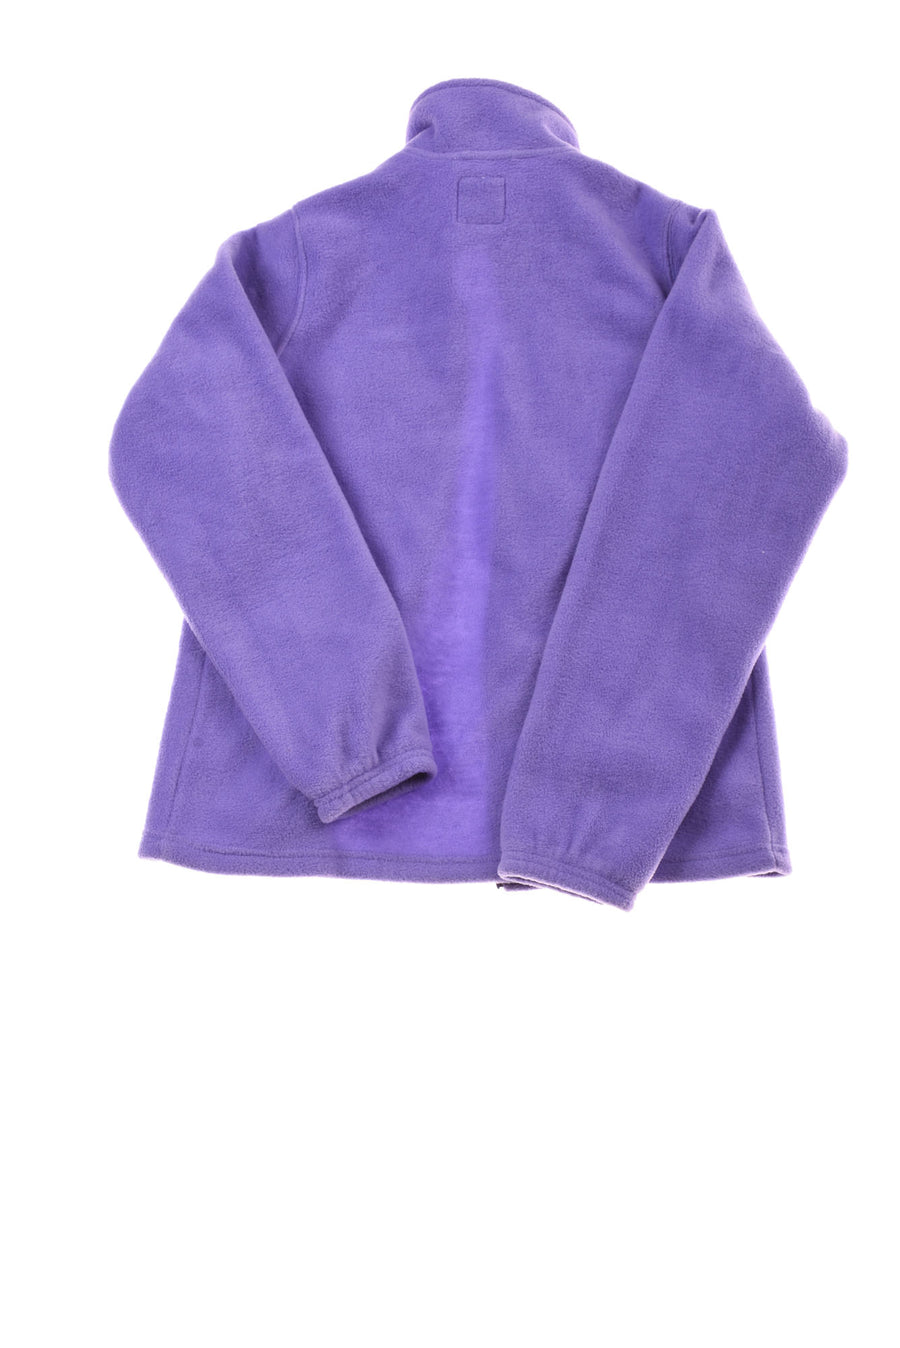 USED The Children's Place Girl's Jacket 14 Purple